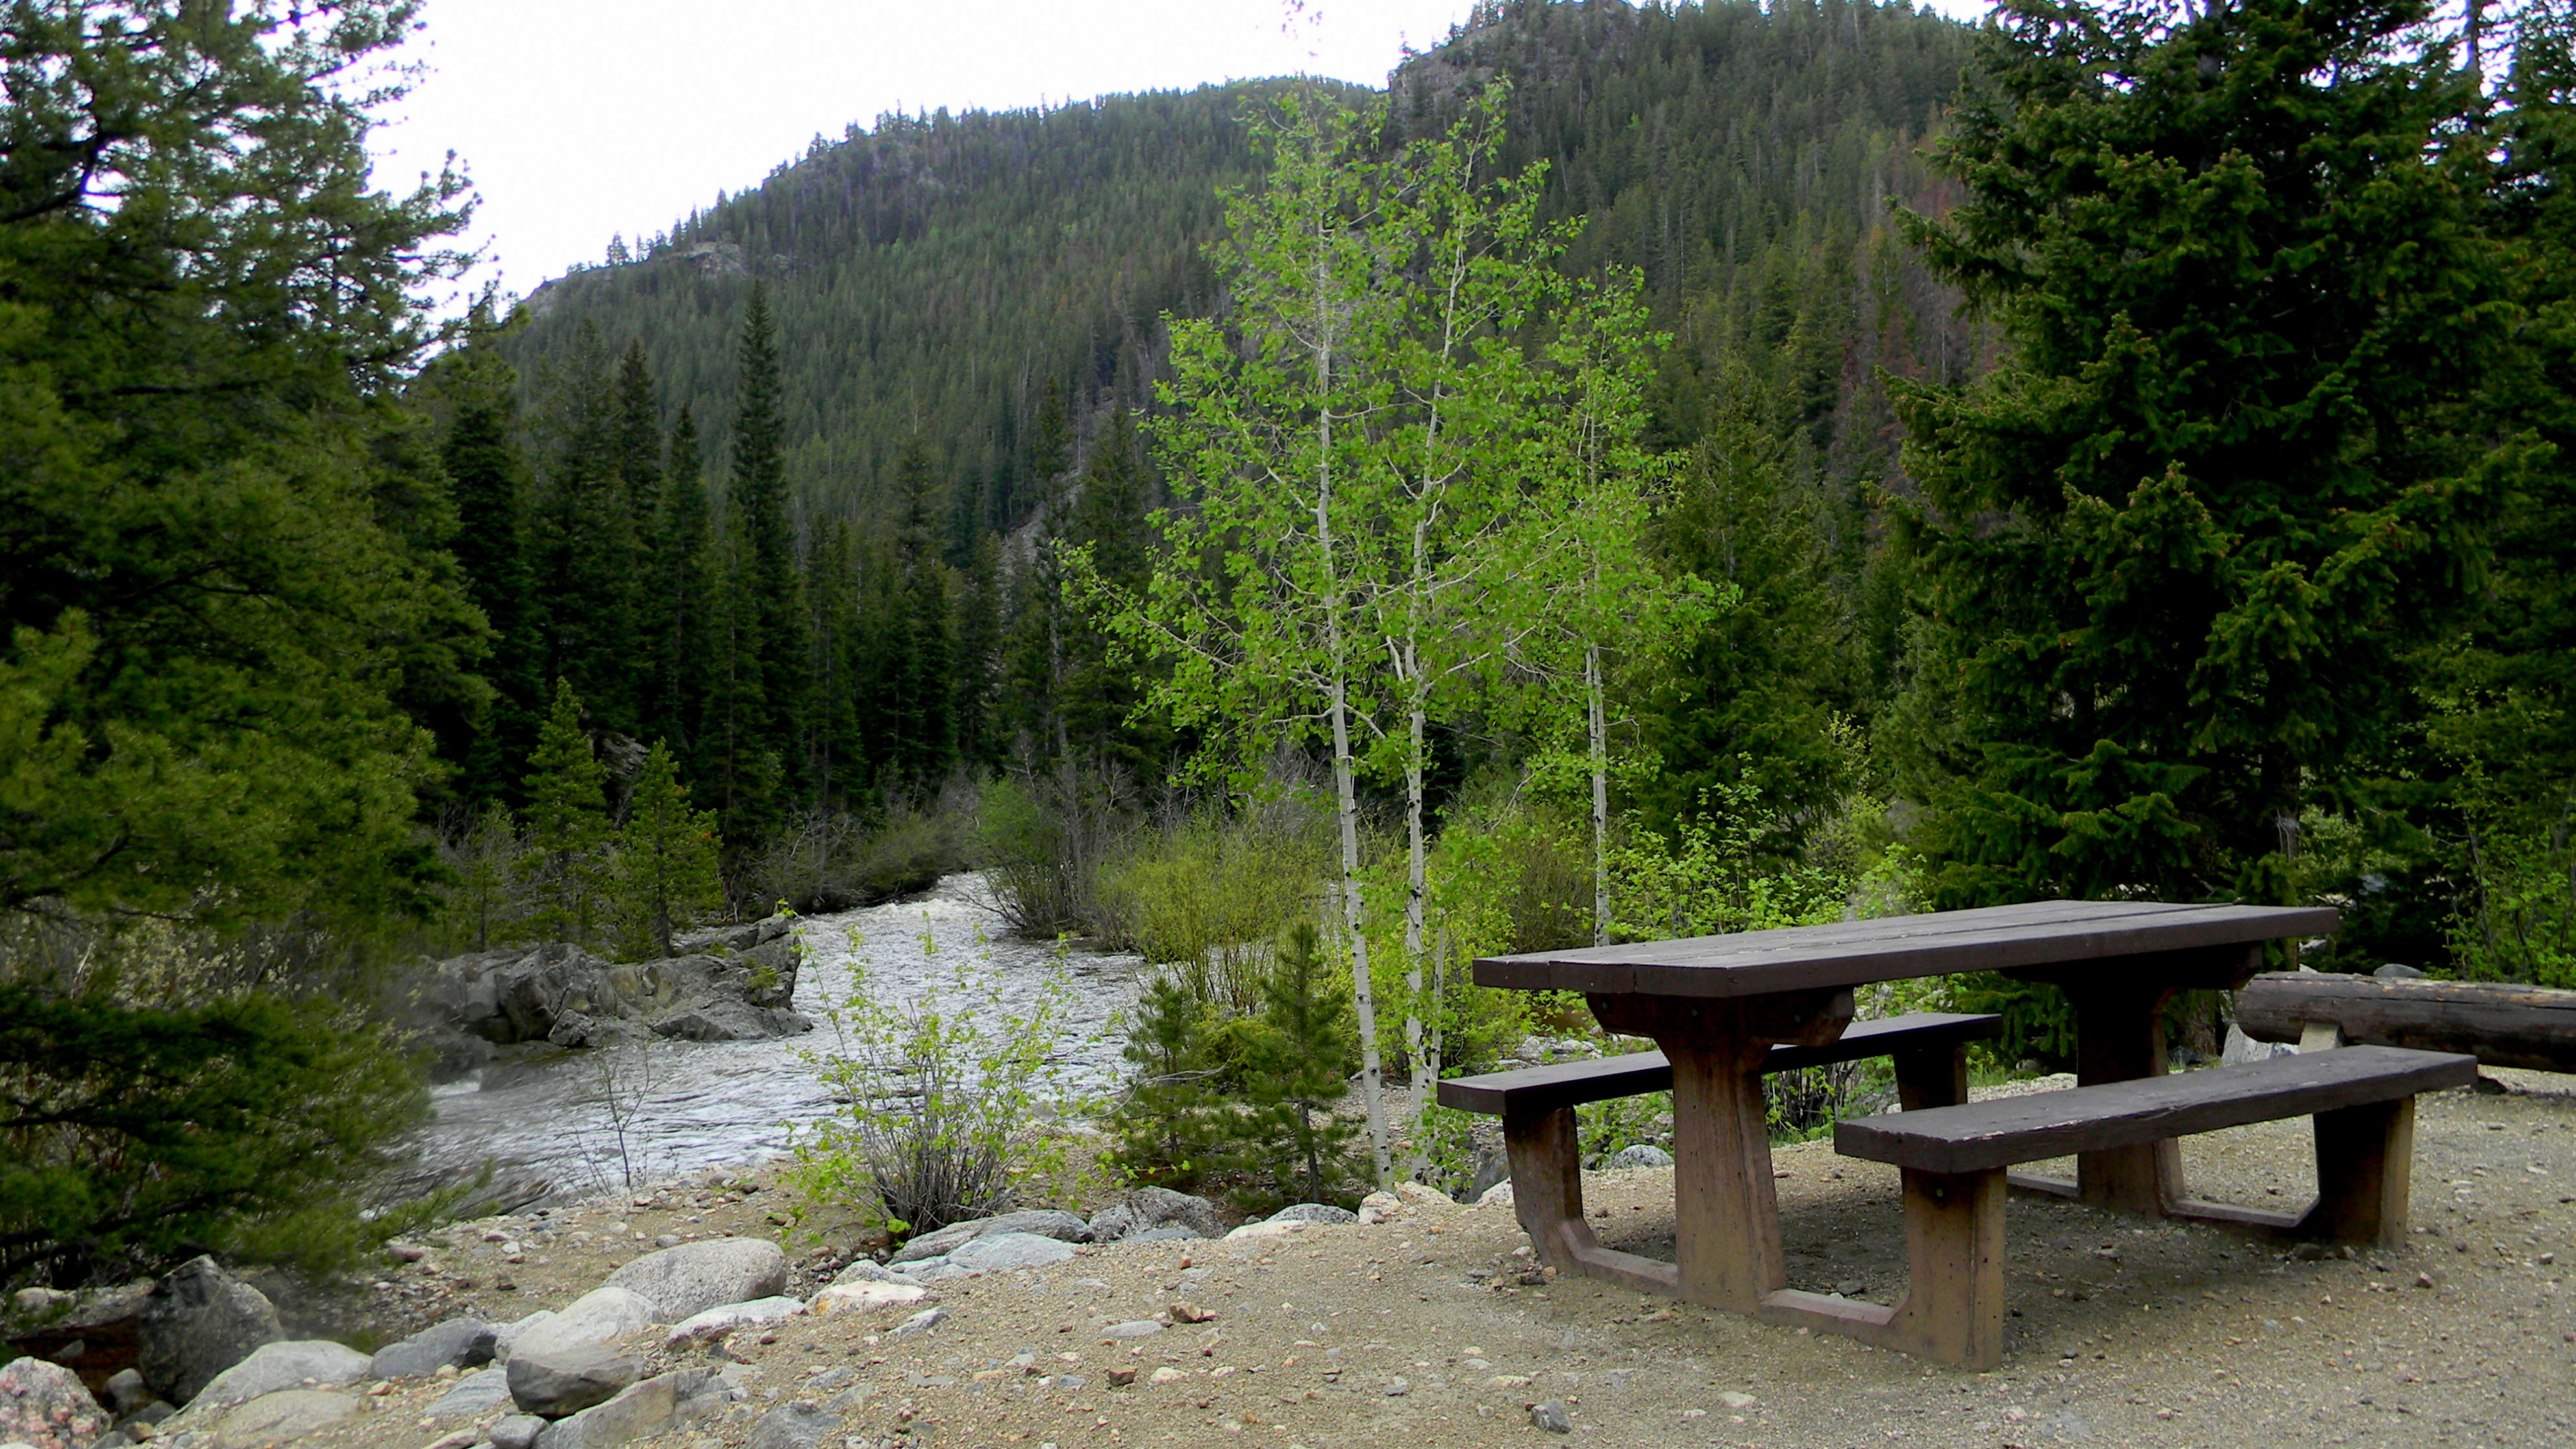 A picnic table at one of the campsites with a view of the Cache La Poudre River on the background.